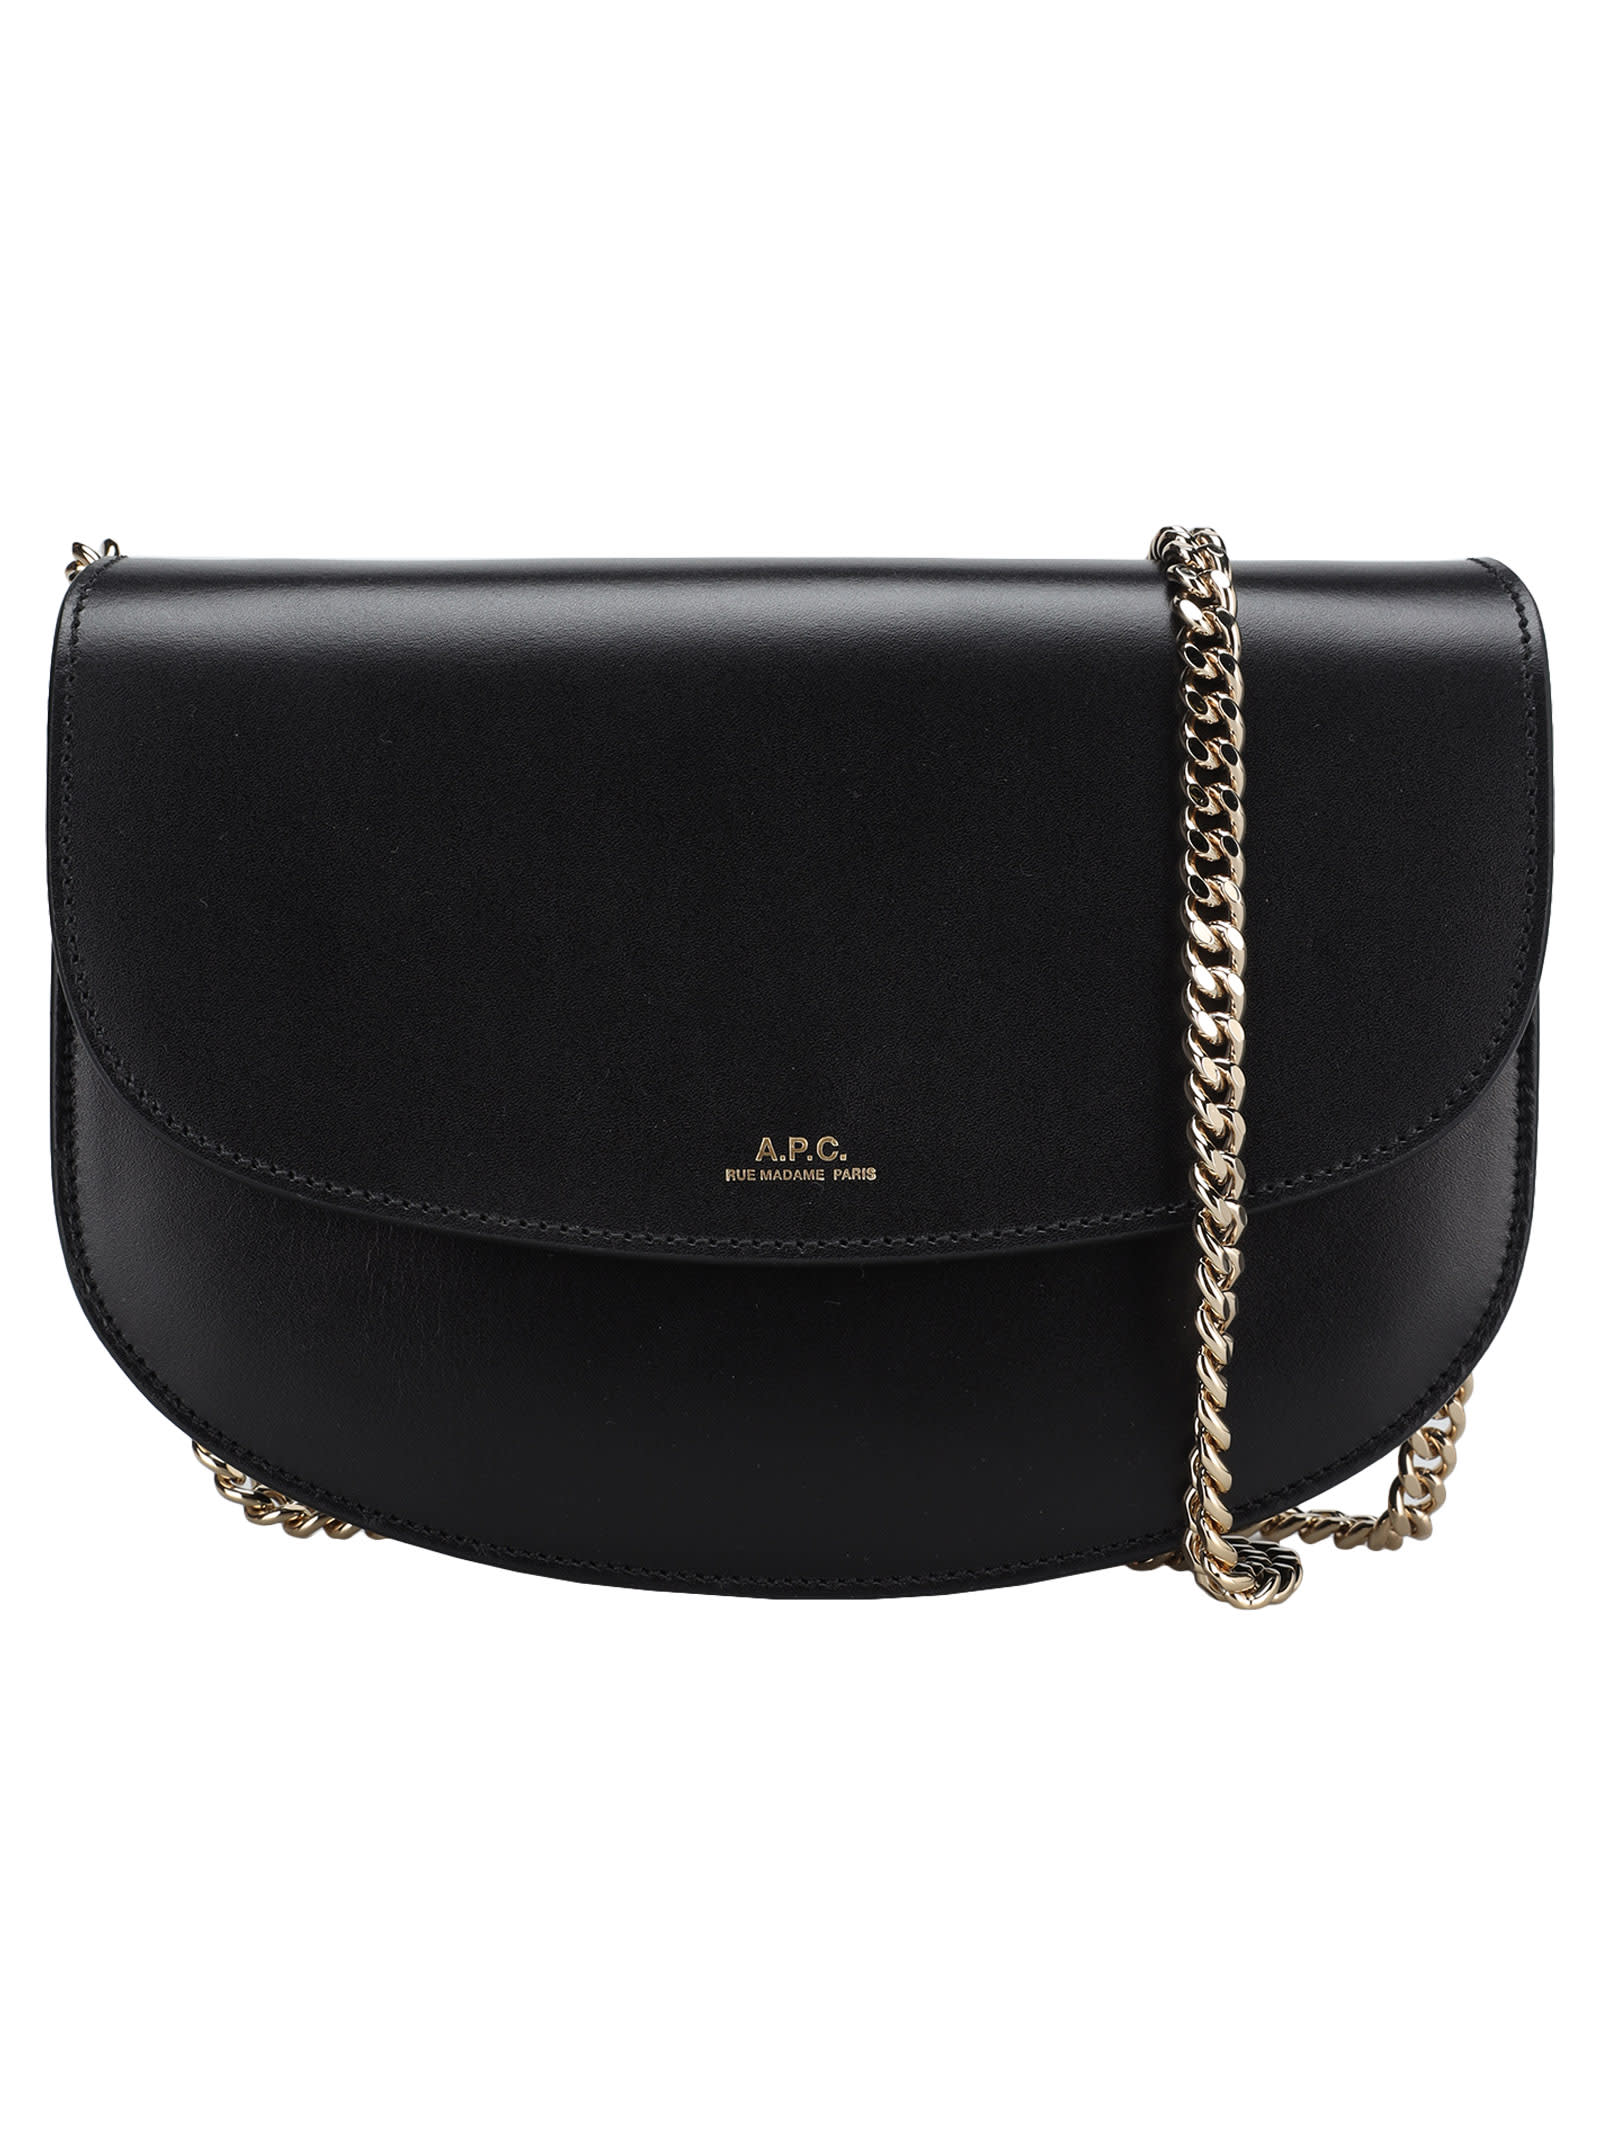 A.p.c. A.P.C. GENÈVE CLUTCH ON CHAIN